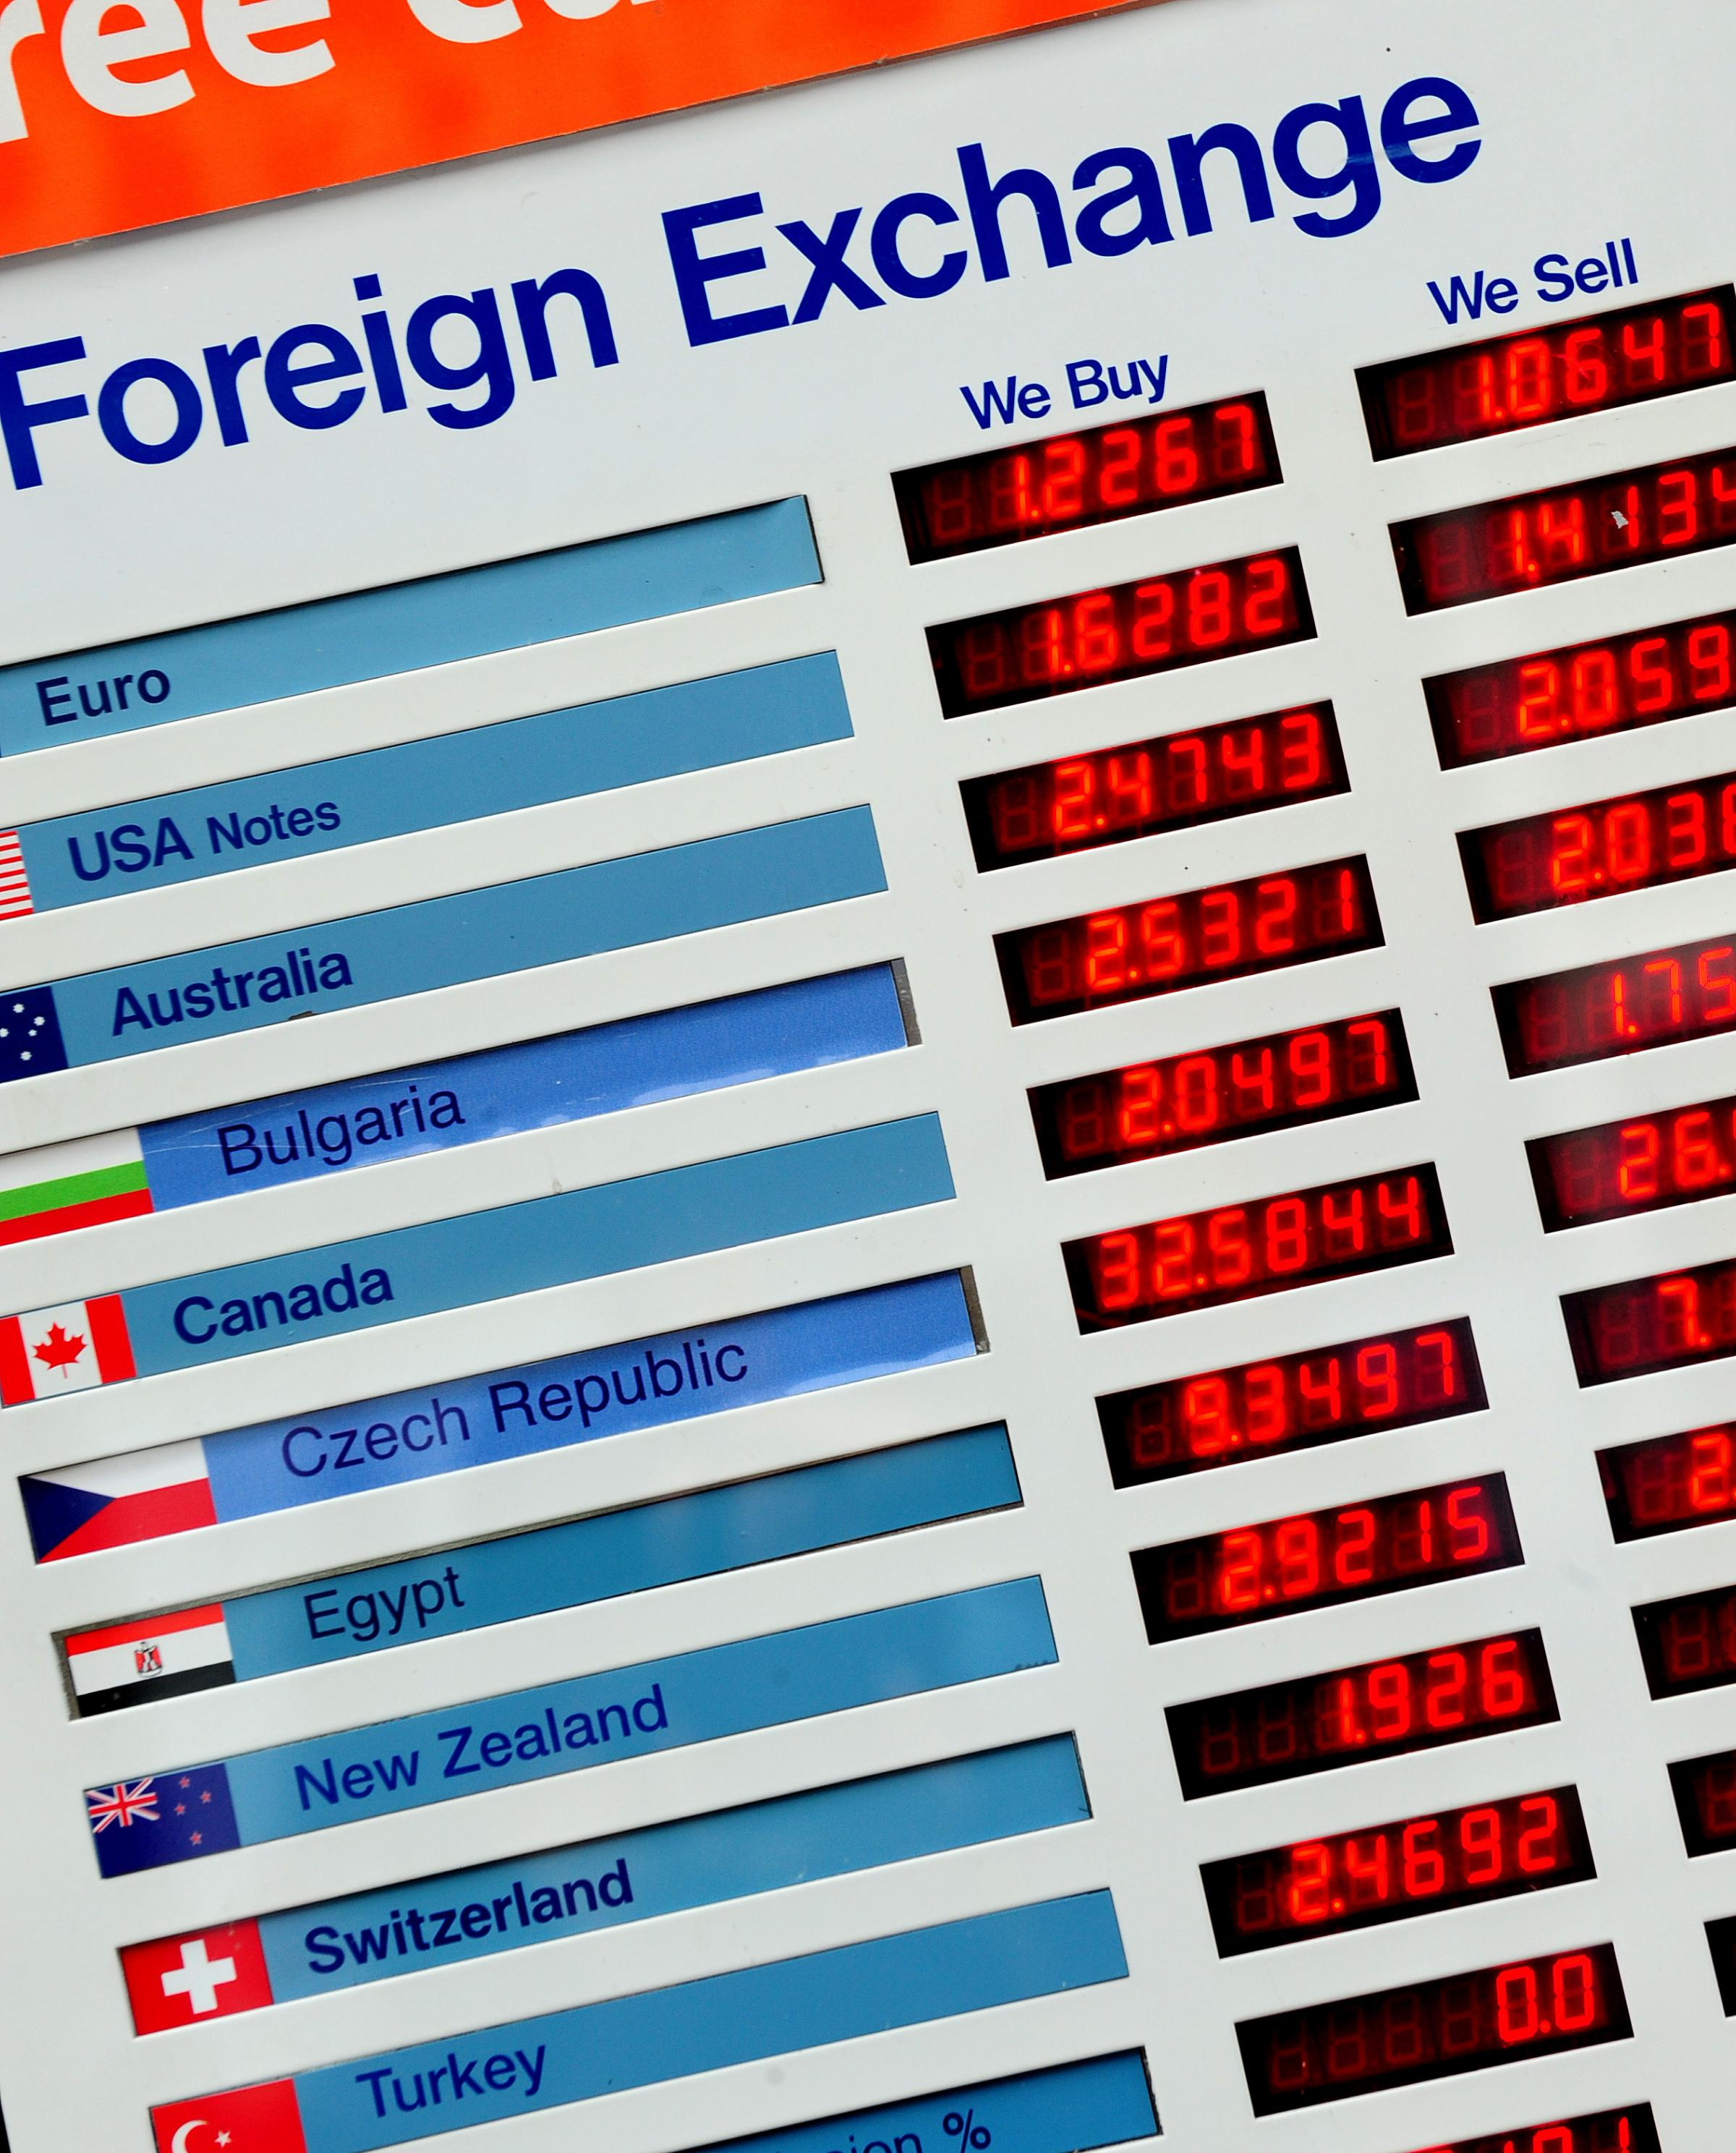 An exchange rate board.